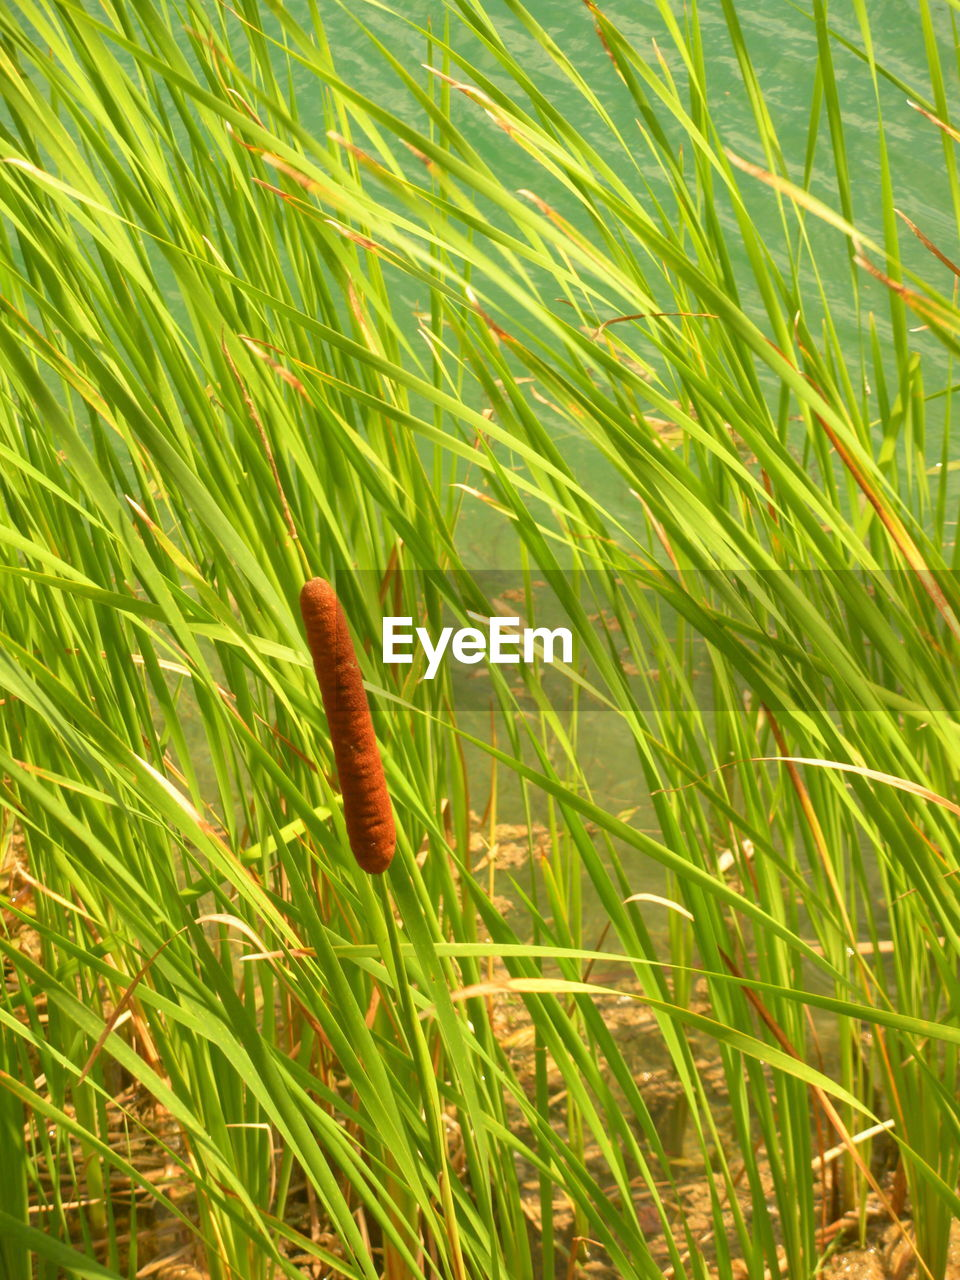 plant, green color, growth, grass, nature, beauty in nature, close-up, no people, day, land, field, outdoors, tranquility, brown, fragility, selective focus, vulnerability, freshness, plant part, sunlight, blade of grass